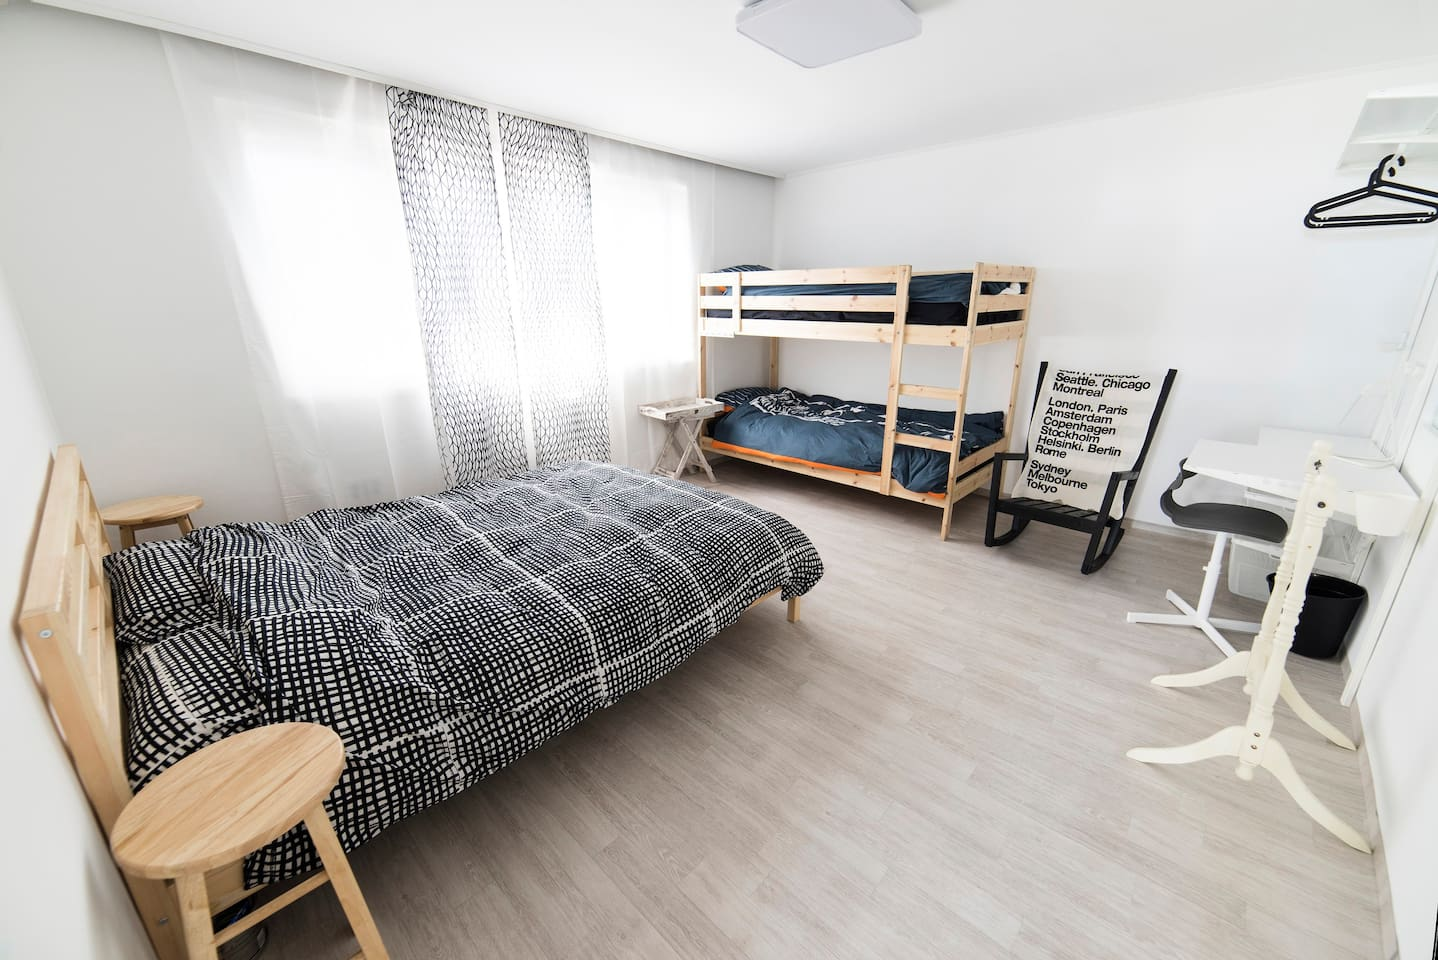 Room KR (Korea) : spacious and huge double bedroom with an Extra up and down single bunk bed for up to 4 person